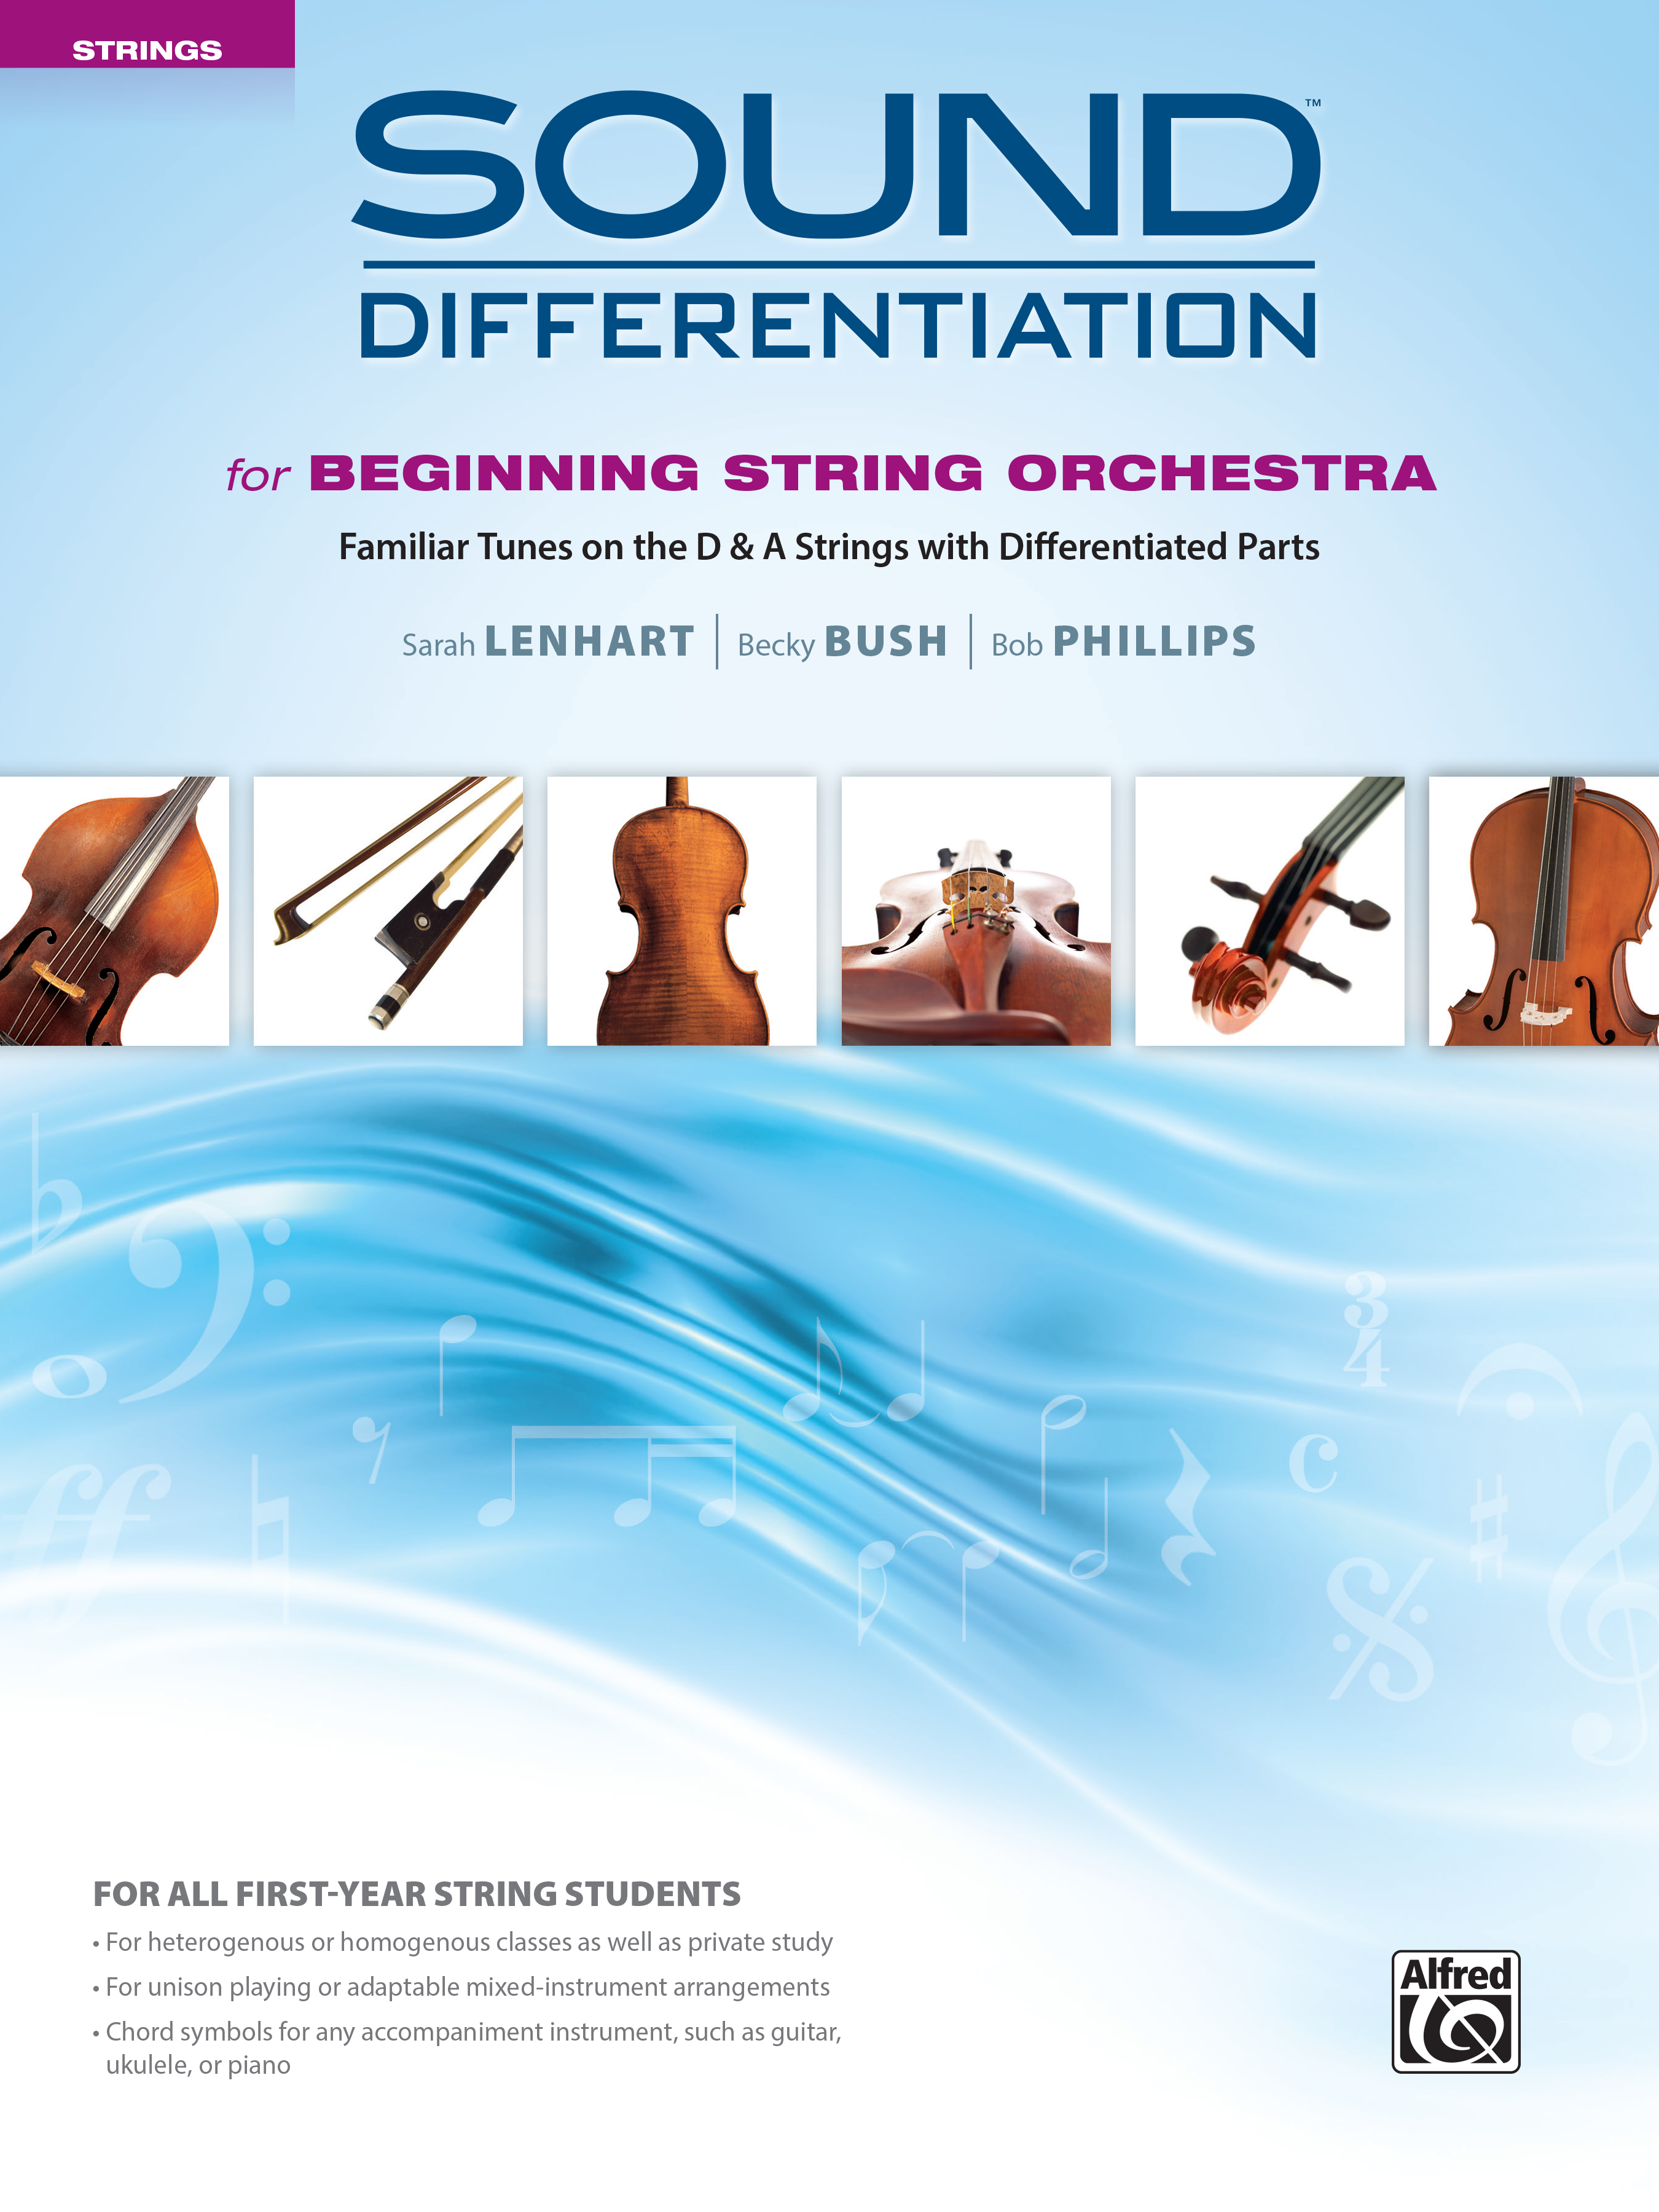 Sound Differentiation: Familiar Tunes on the D and A Strings with Differentiated Parts